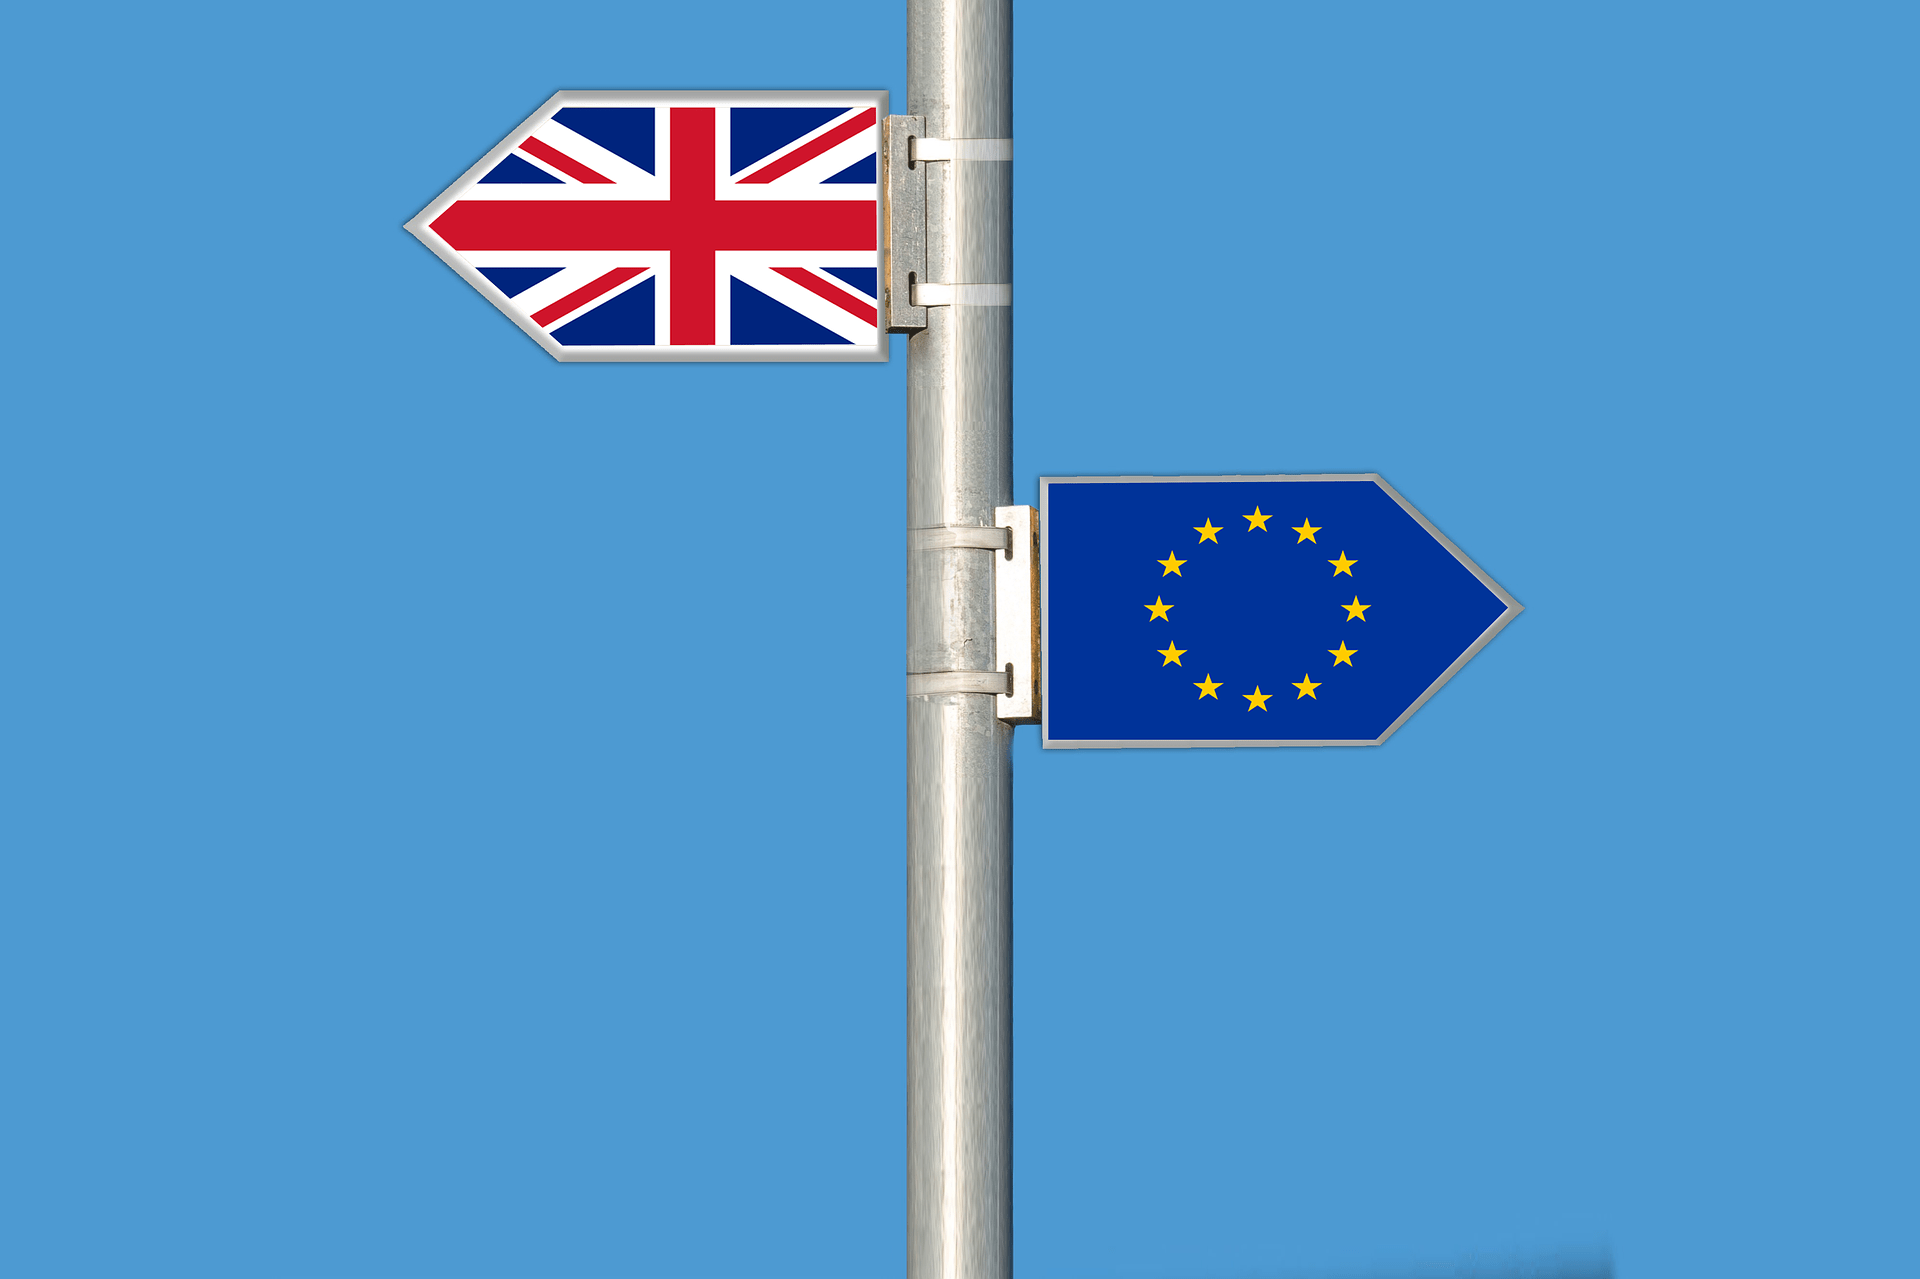 British flag and EU flag pointing in different directions